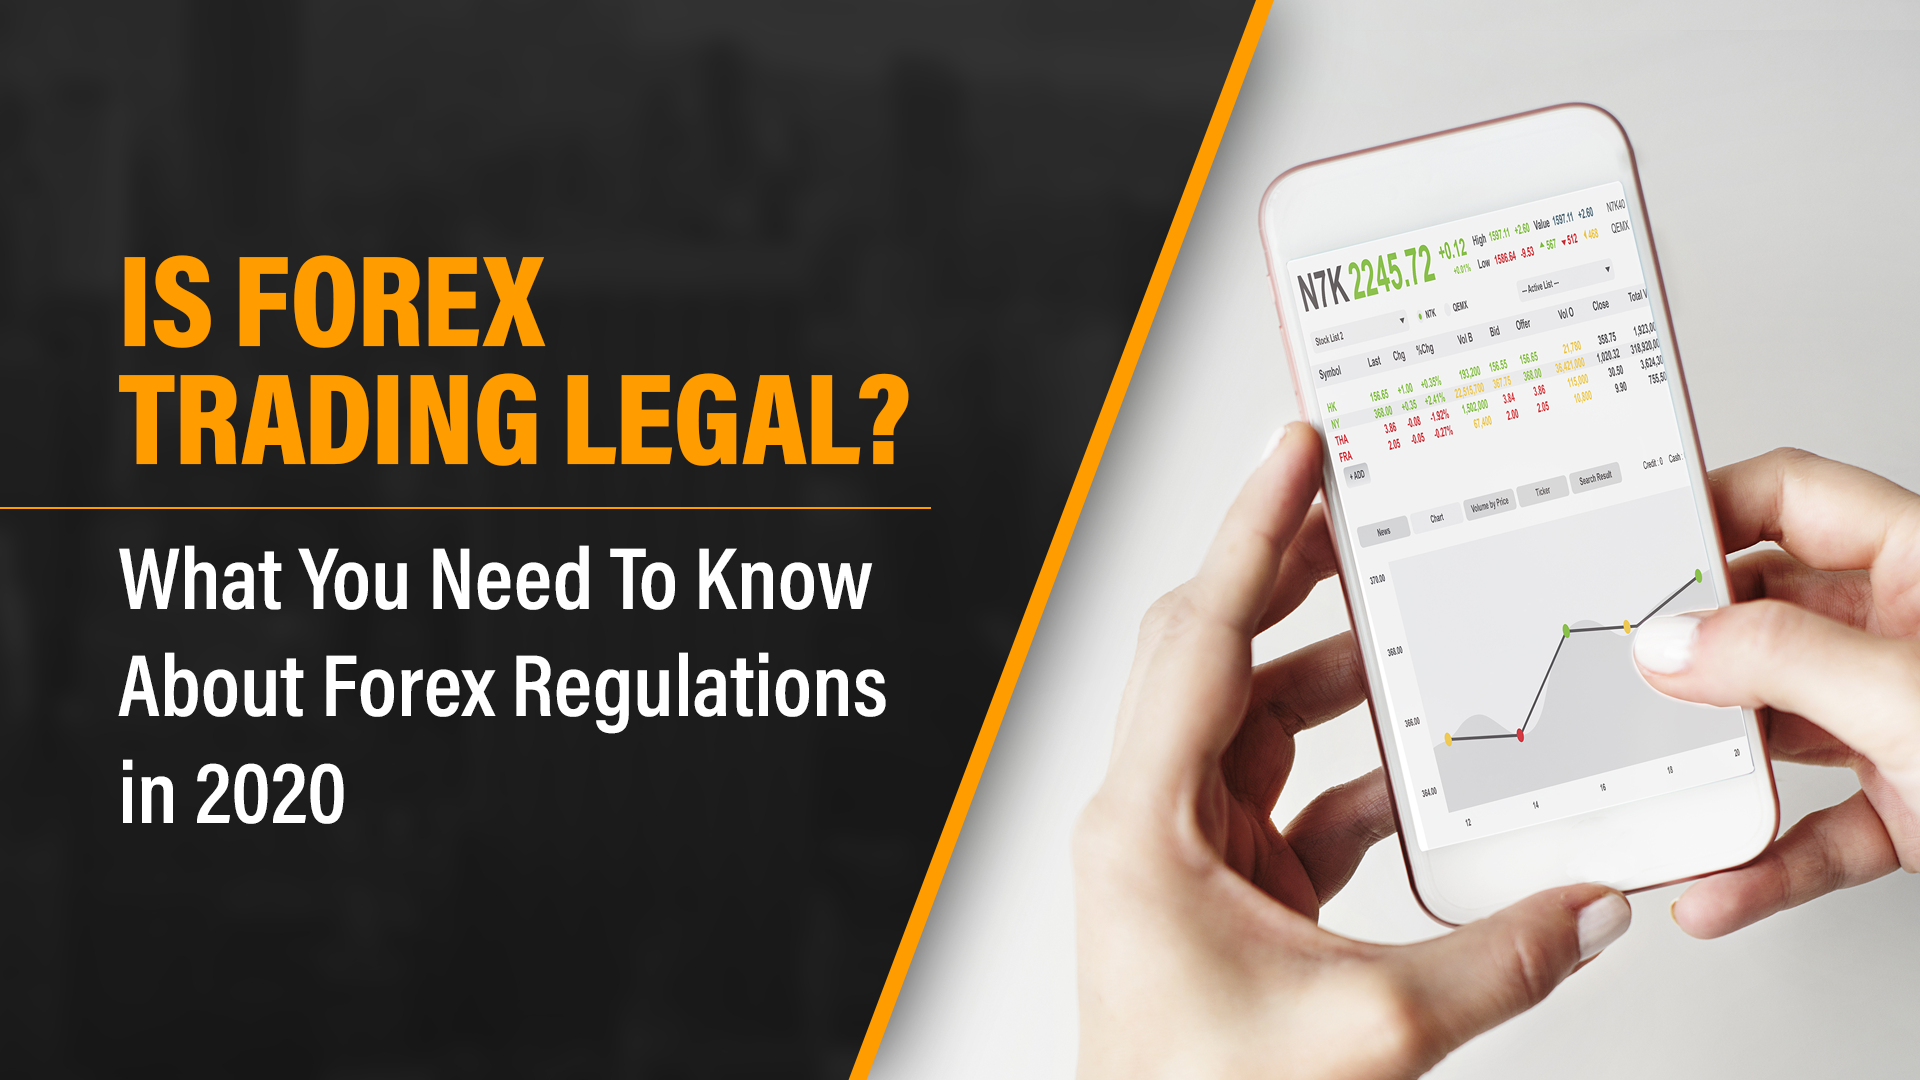 Is Forex Trading Legal 2020